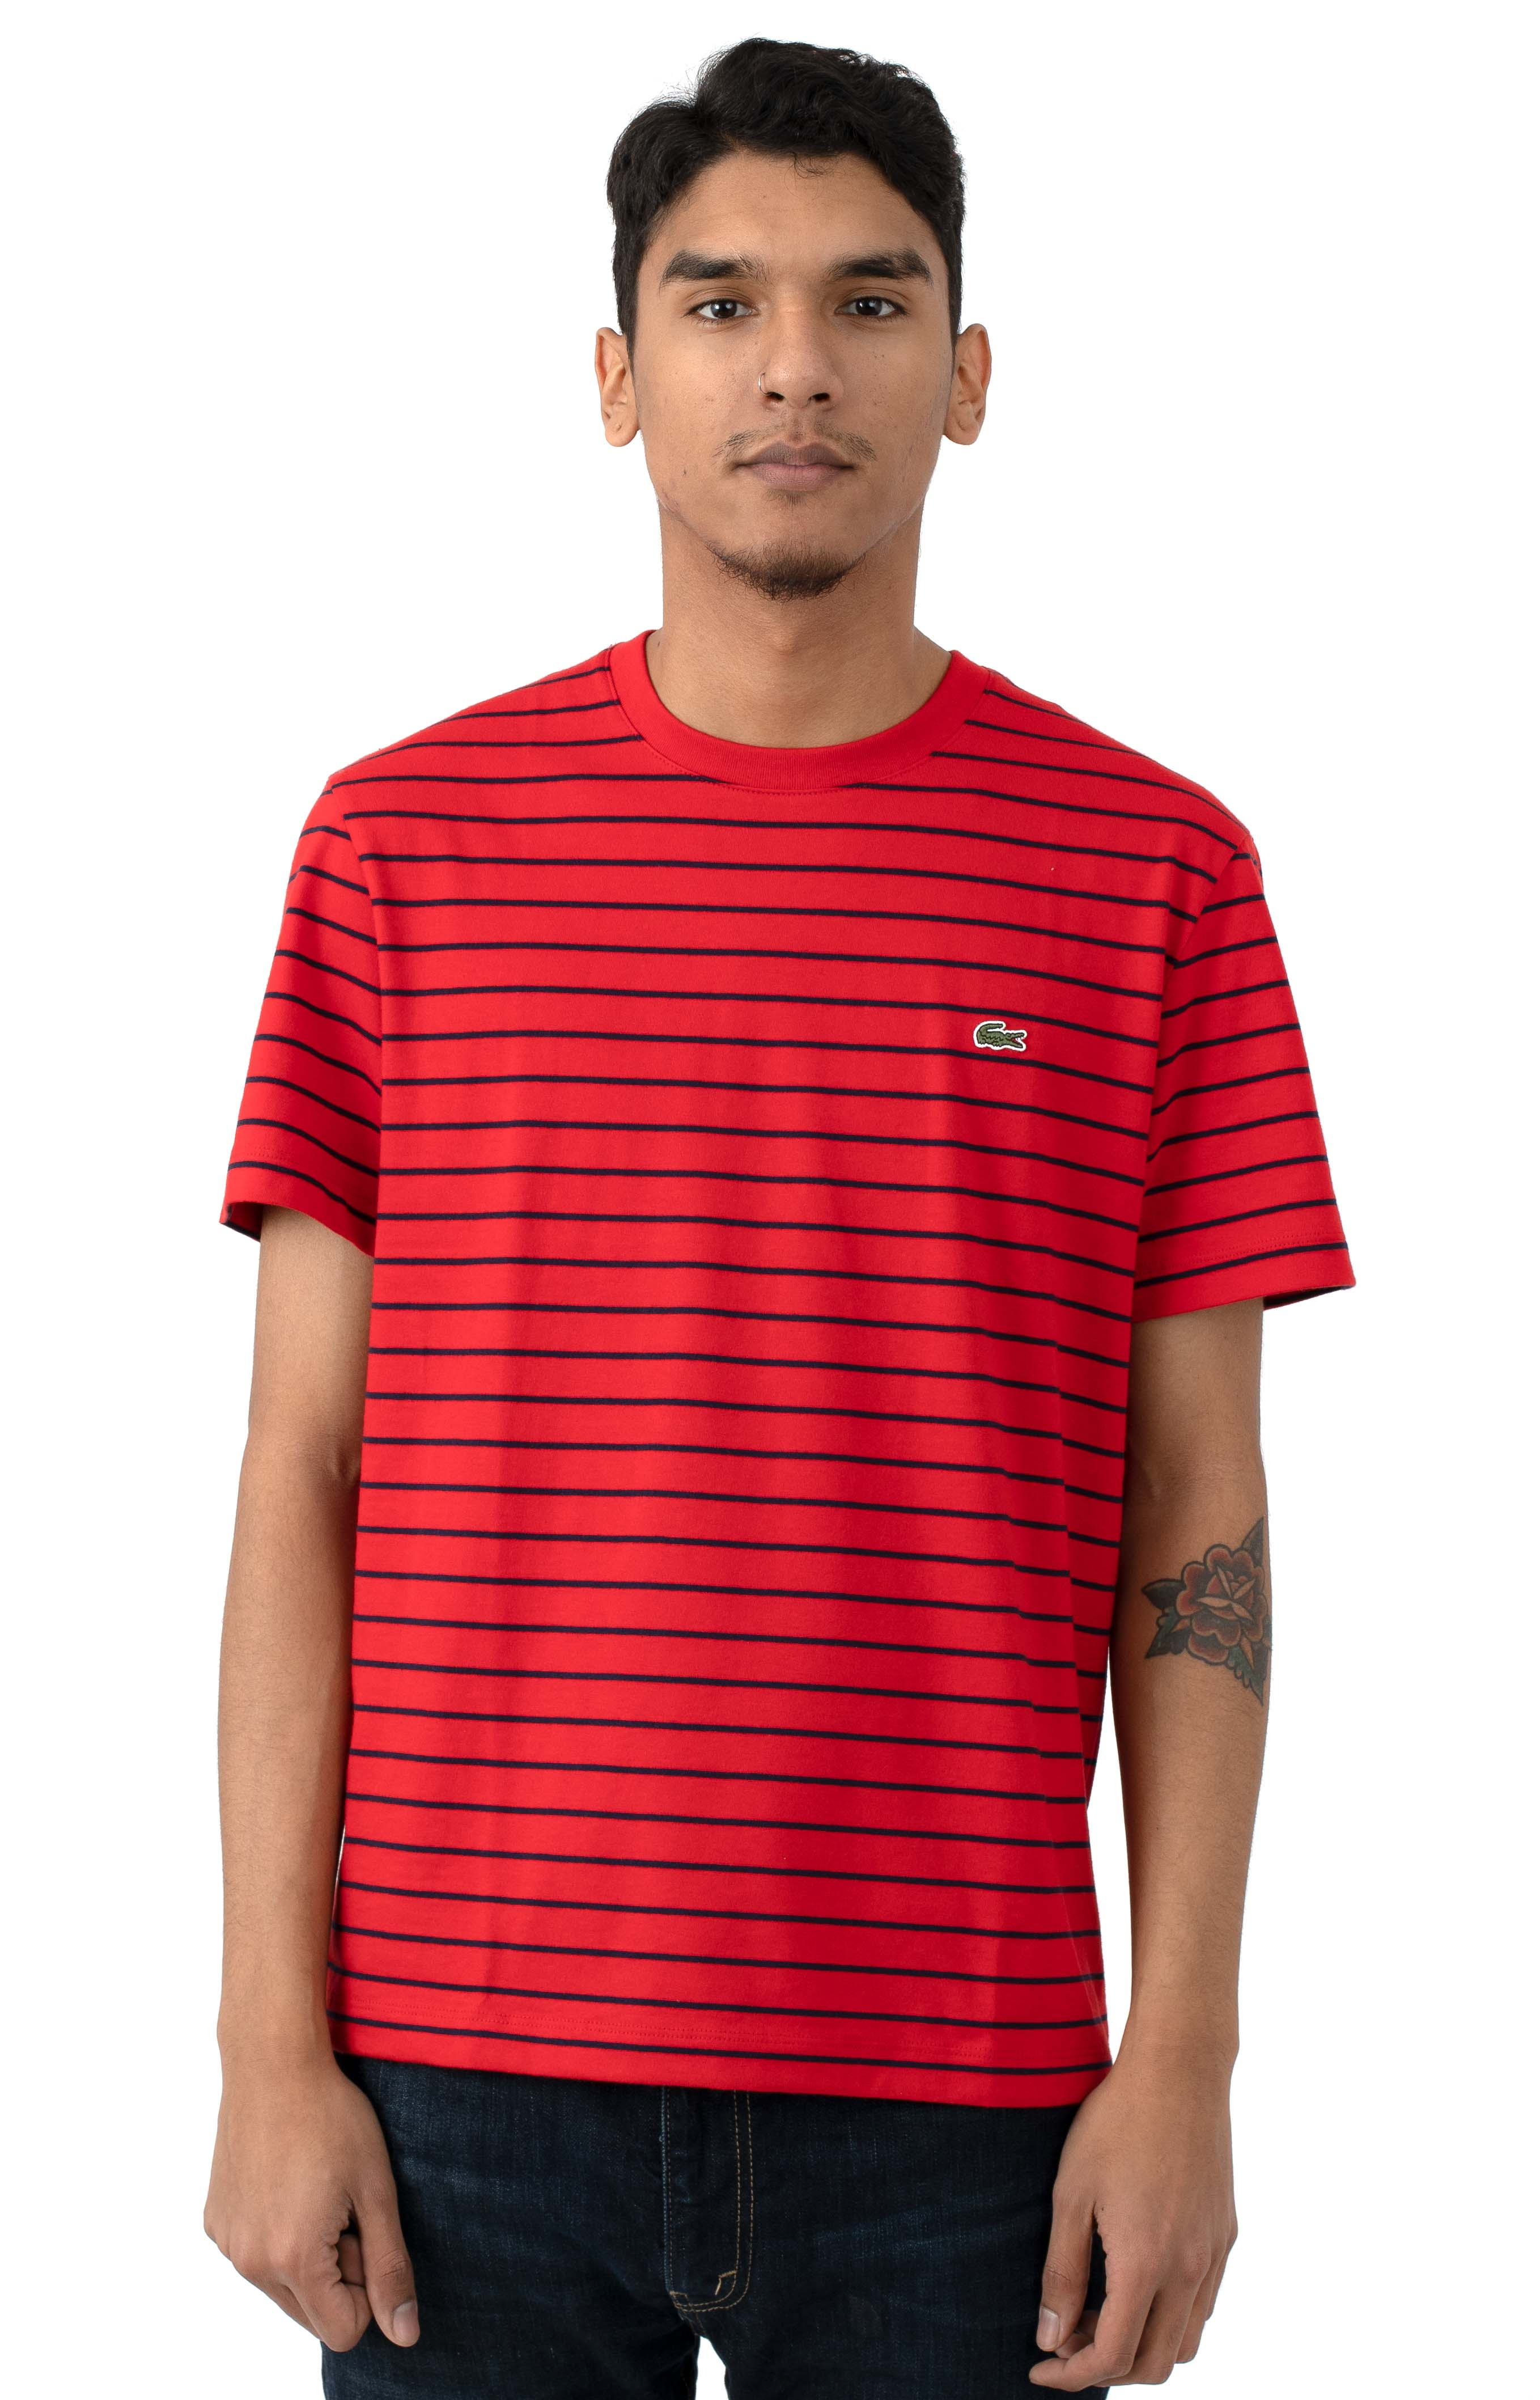 SS Striped Necktape T-Shirt - Red/Navy